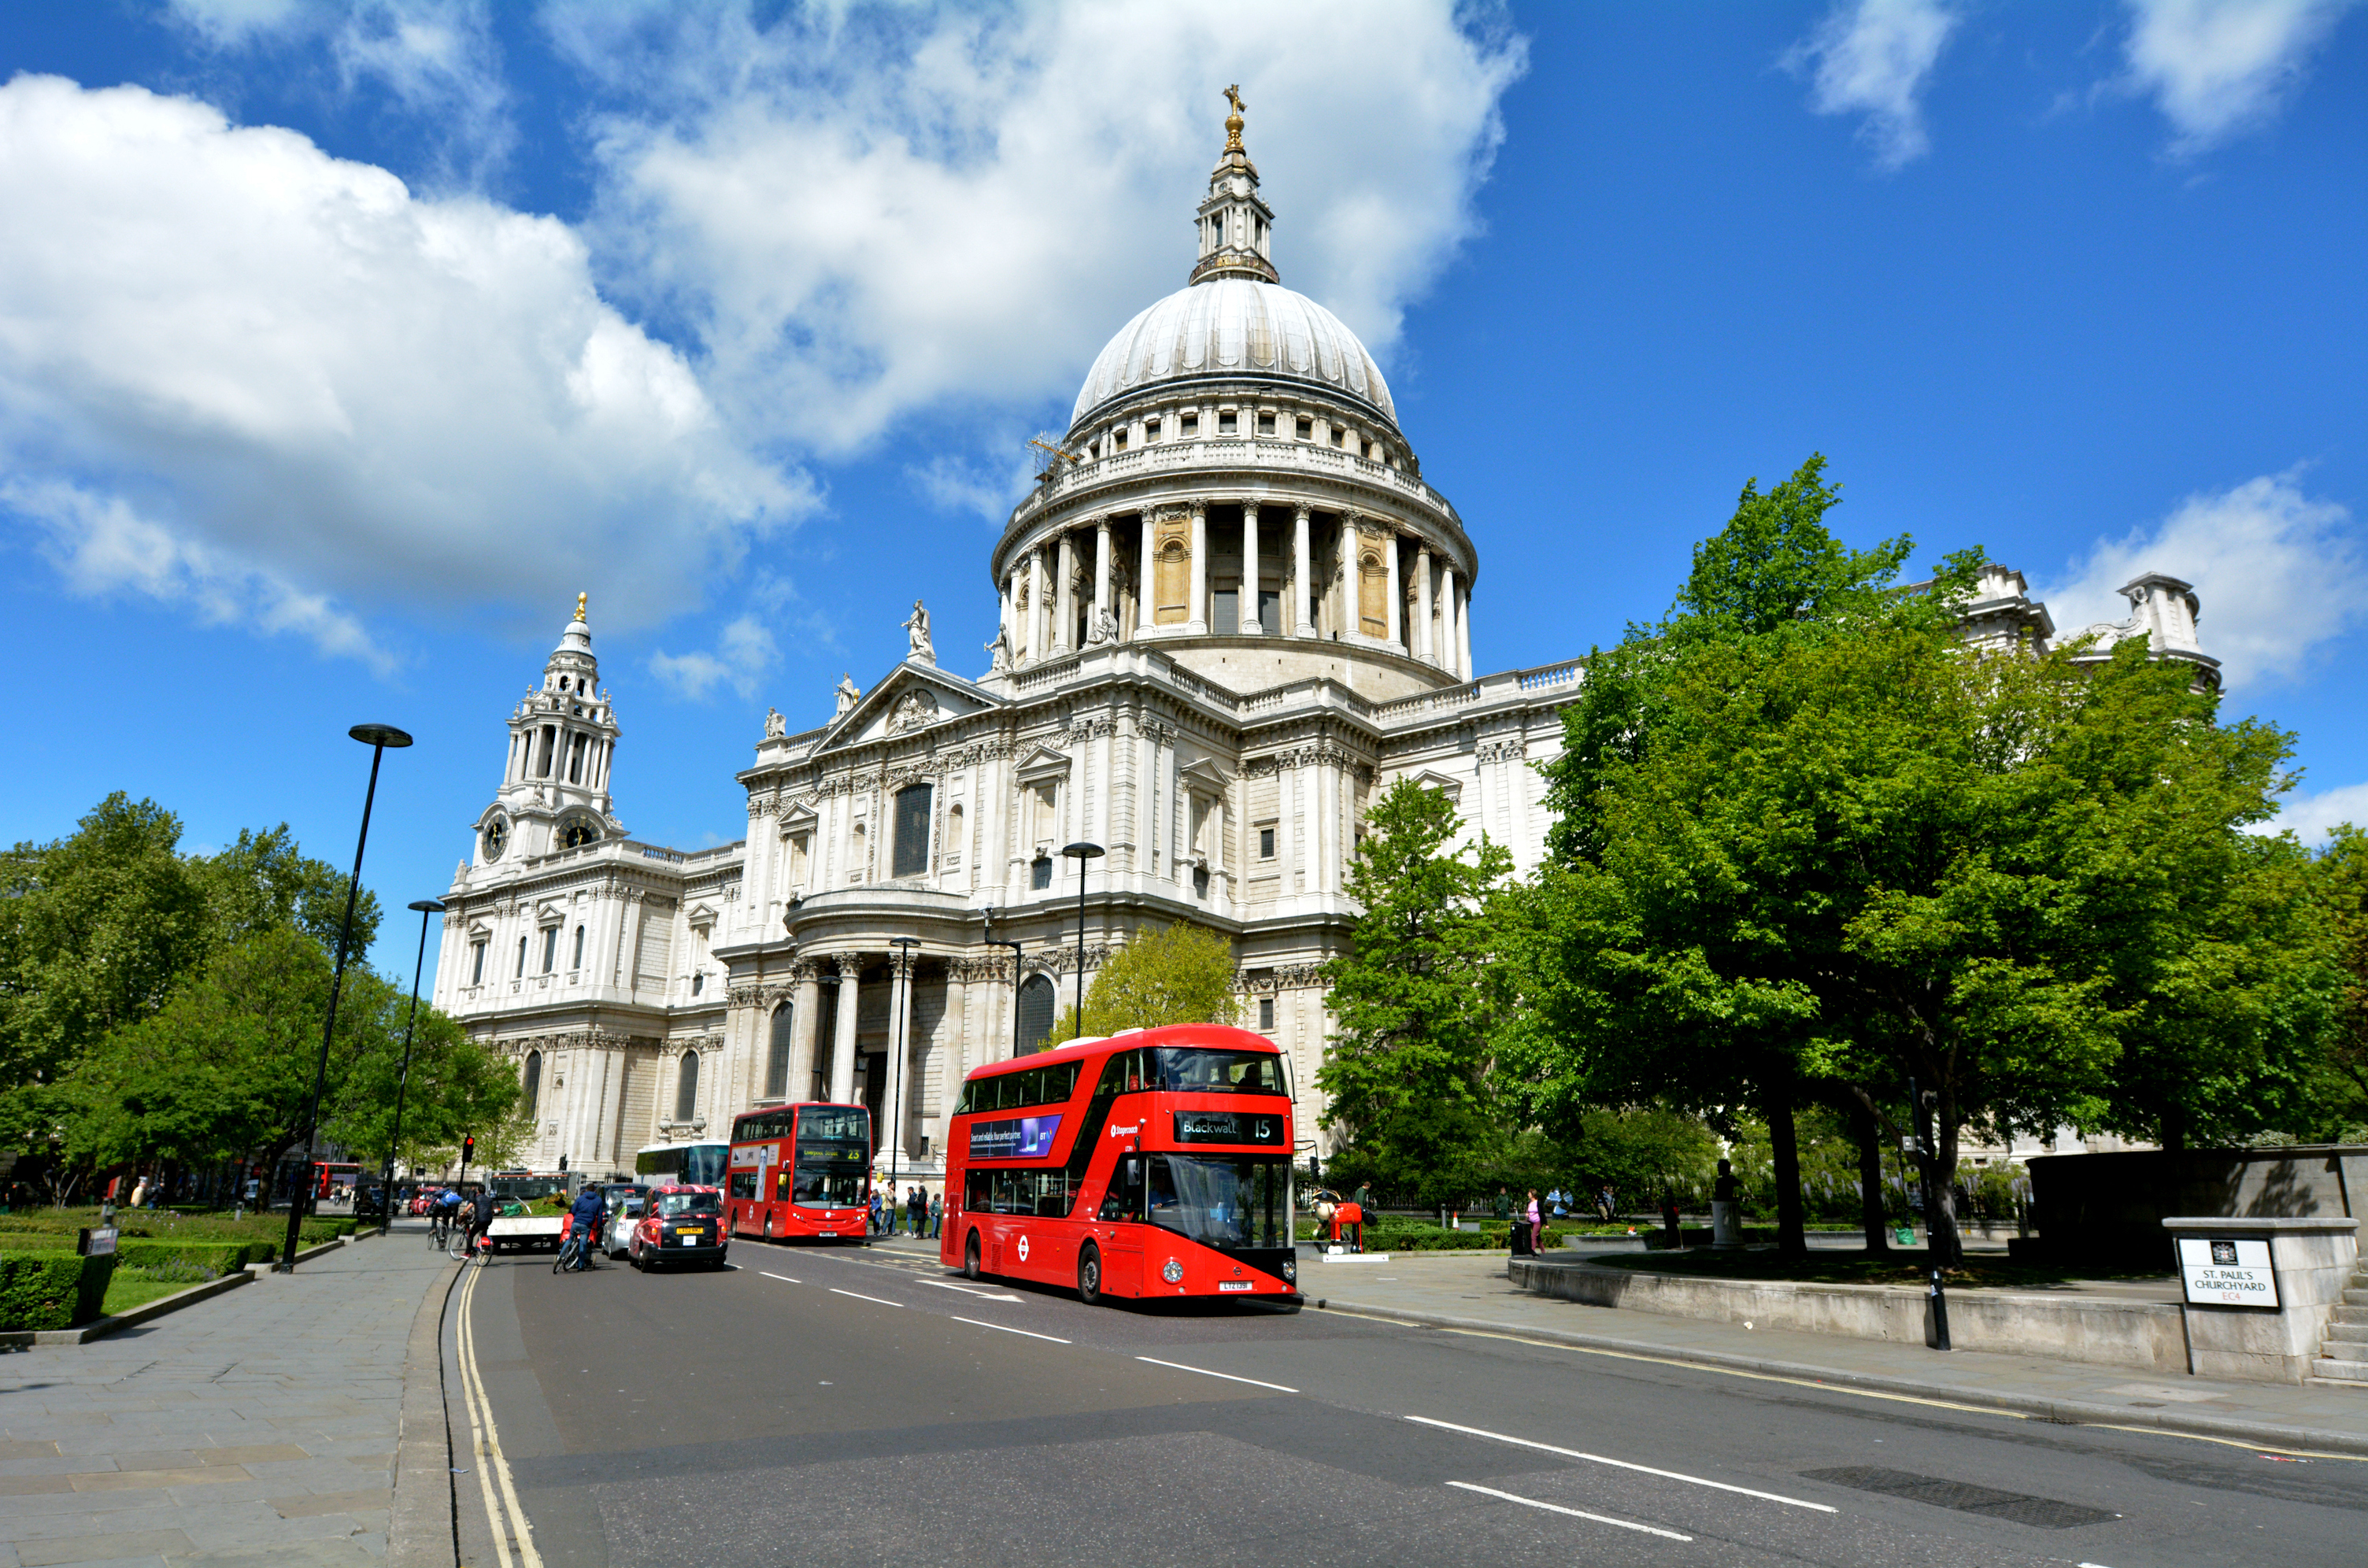 London, United Kingdom - May 12, 2015: Red tourist buses outside St Pauls Cathedral London England, UK.The cathedral is one of the most famous and most recognisable sights of London.St Paul's also possesses Europe largest crypt.